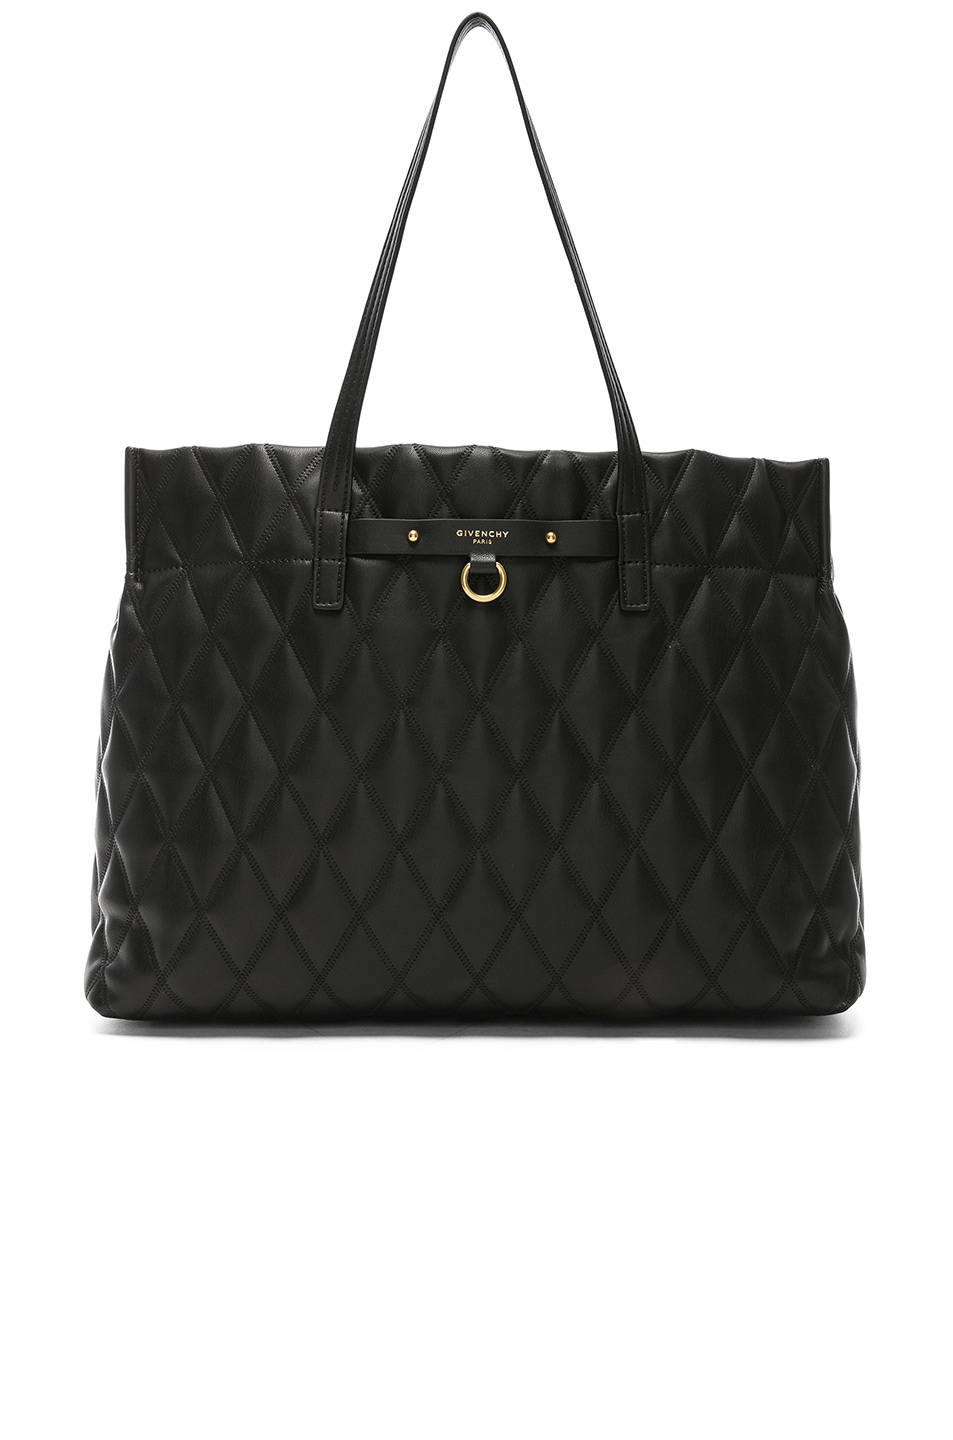 Image 1 of Givenchy Duo Shopper Tote in Black